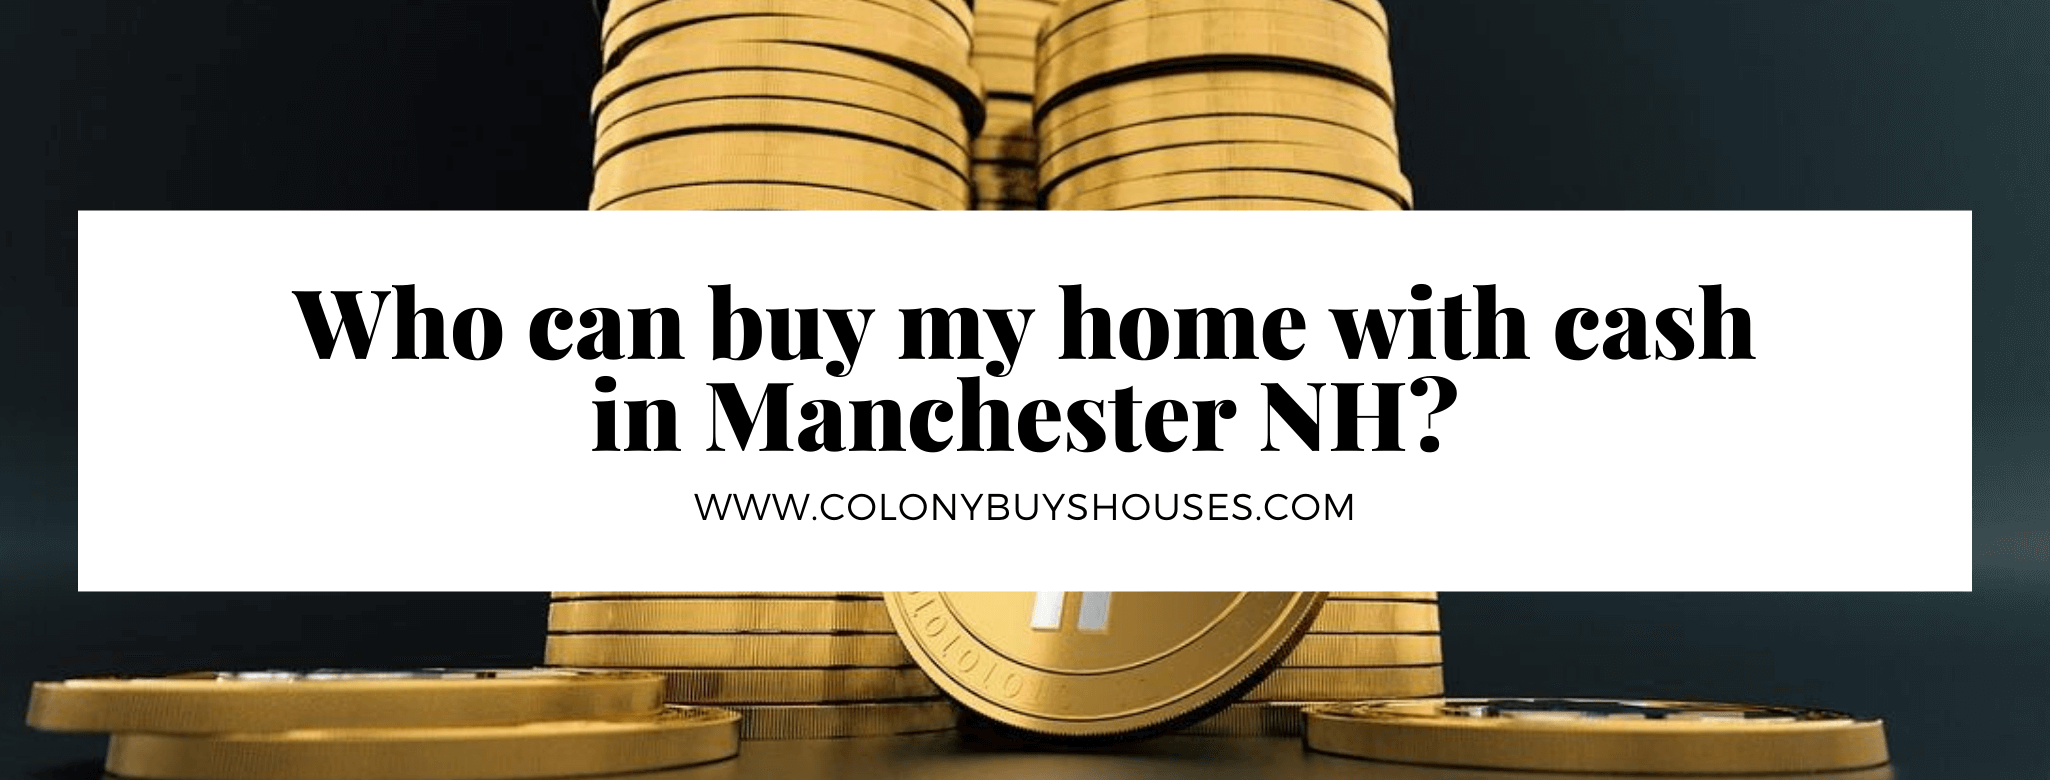 sell your home in Manchester NH